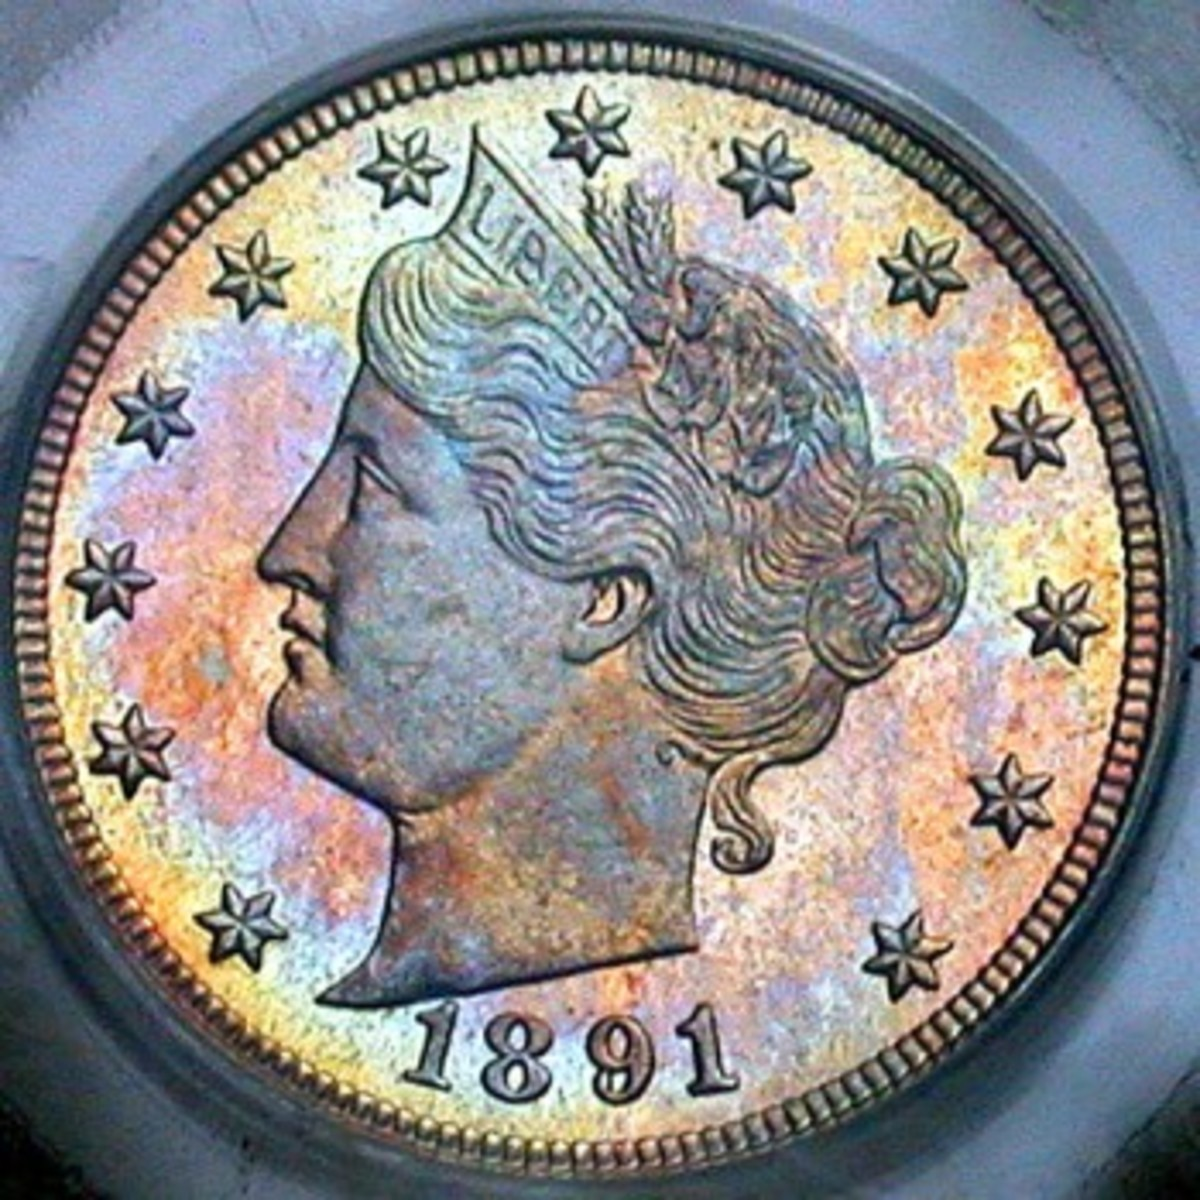 1891 Liberty Head Nickel Proof. Photo Courtesy Coinpage.com